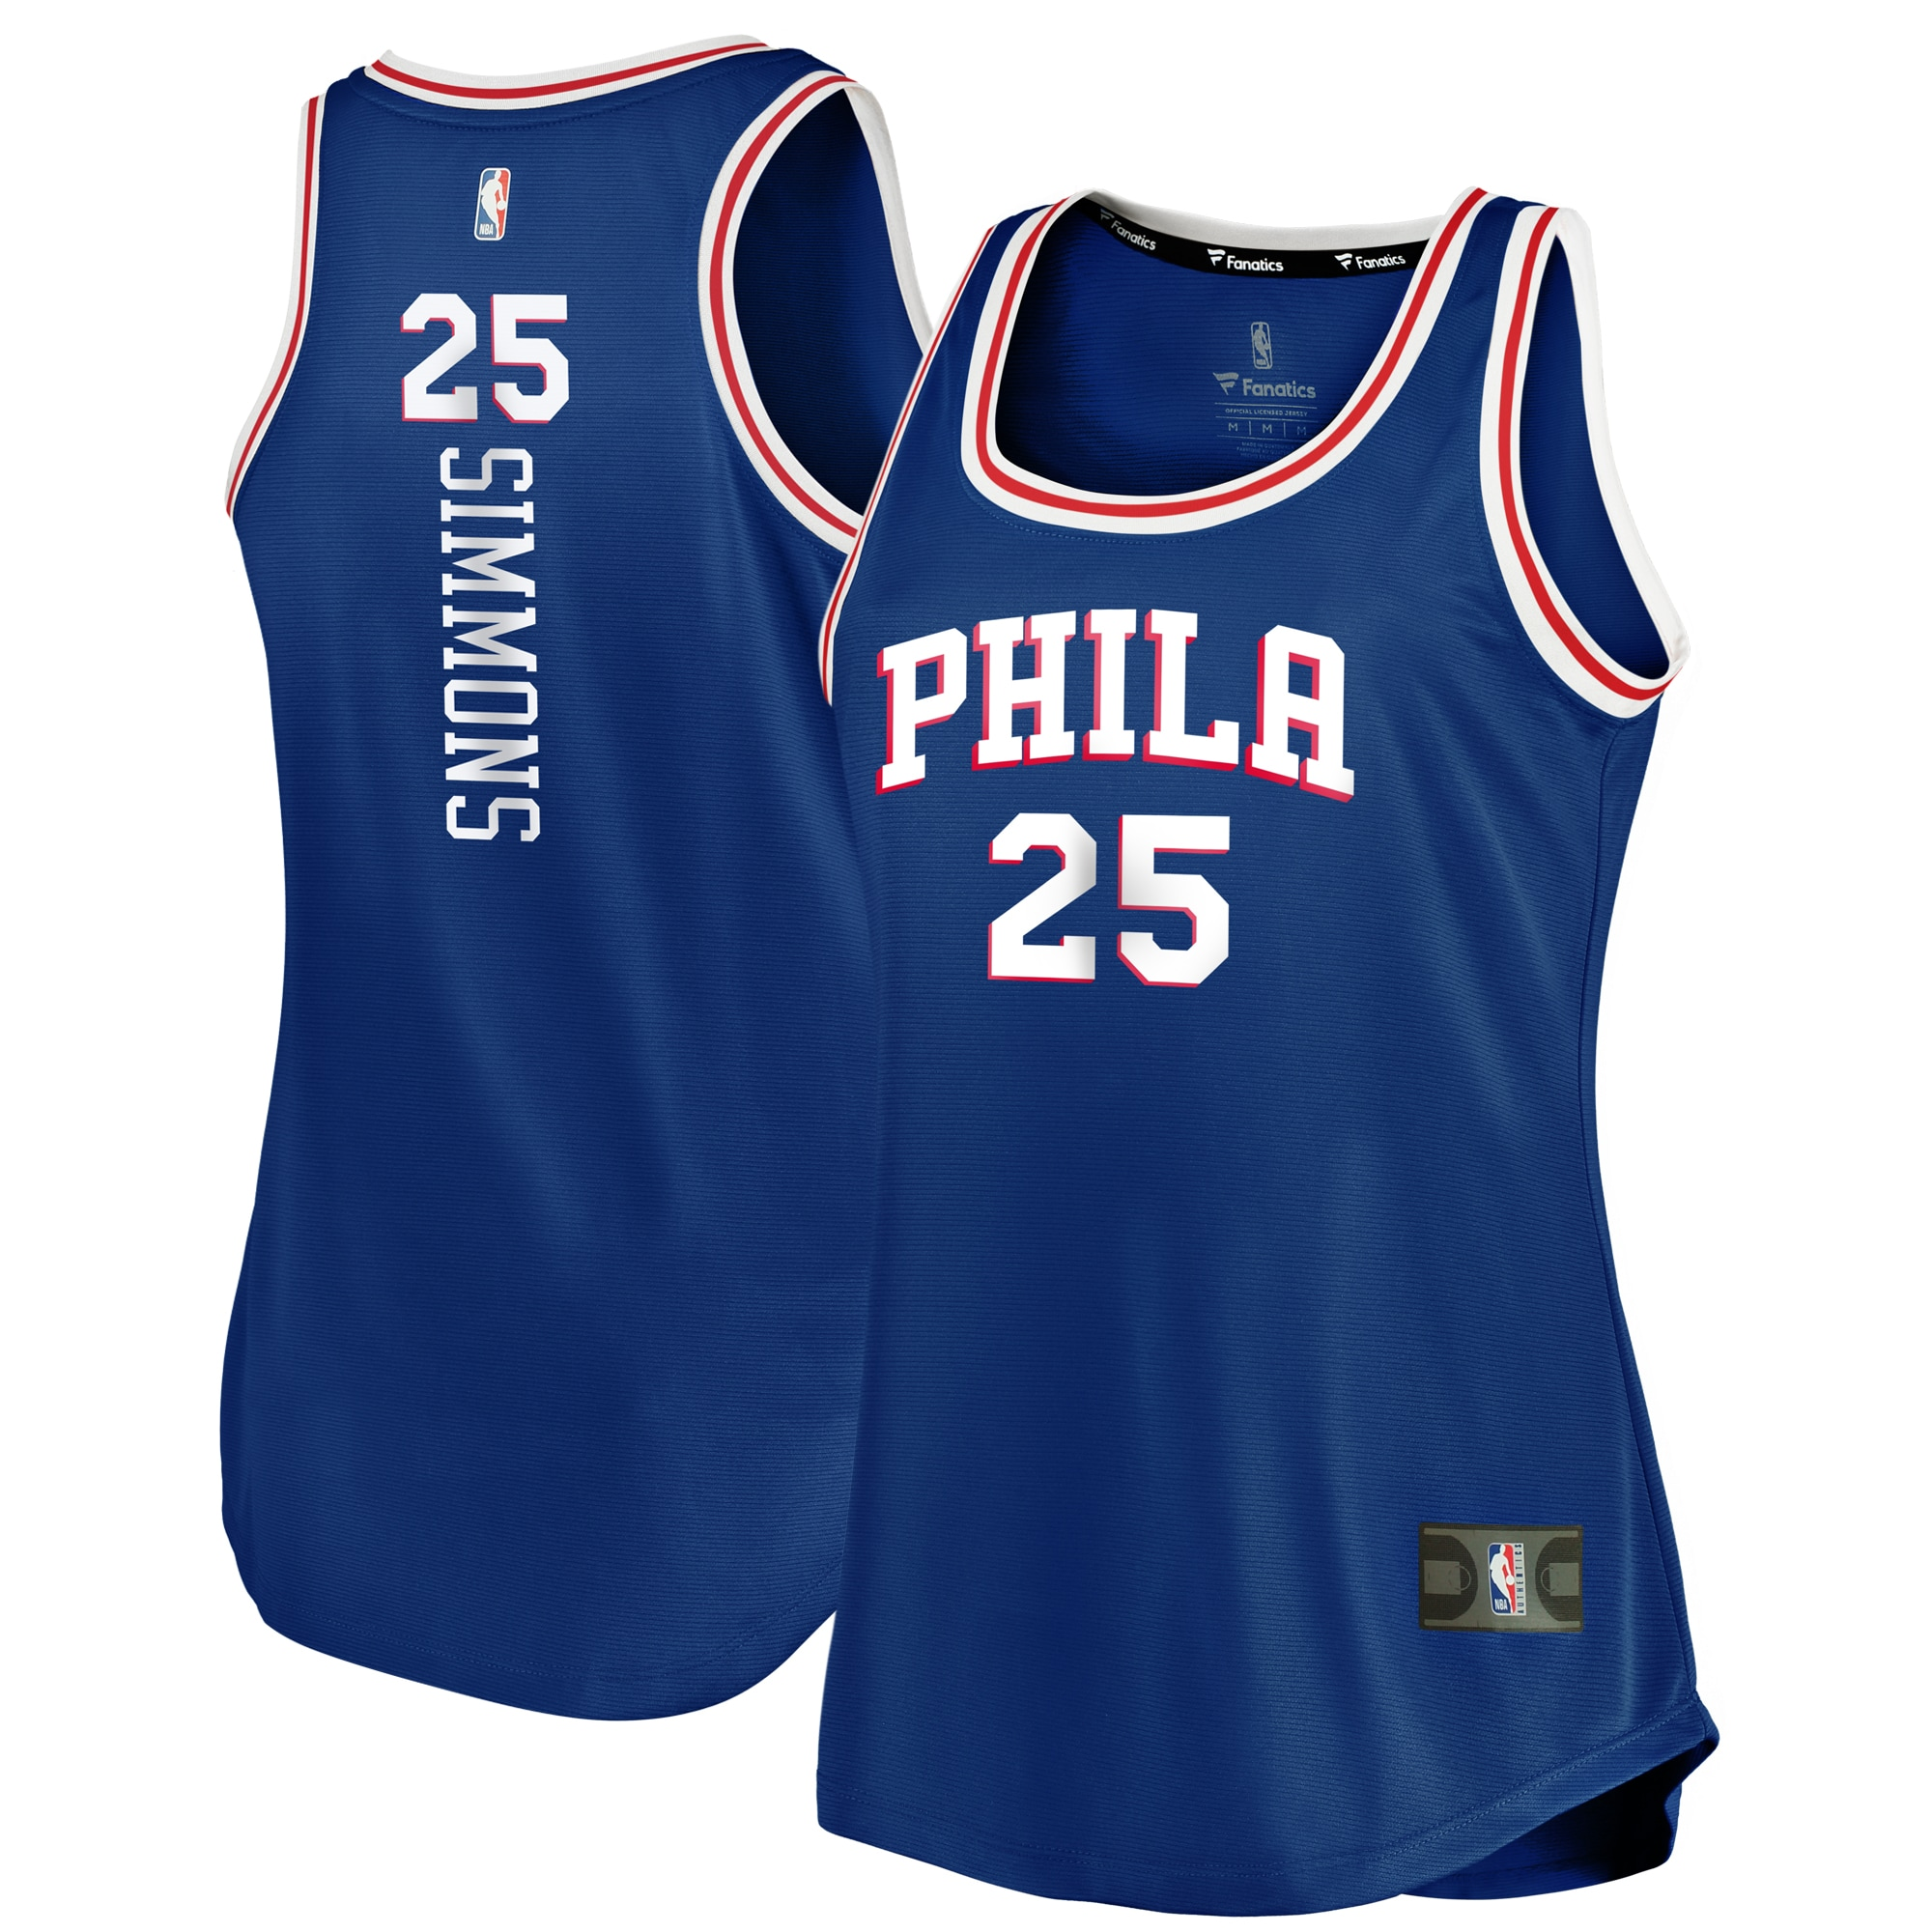 Ben Simmons Philadelphia 76ers Fanatics Branded Women's Fast Break Tank Jersey - Icon Edition - Royal